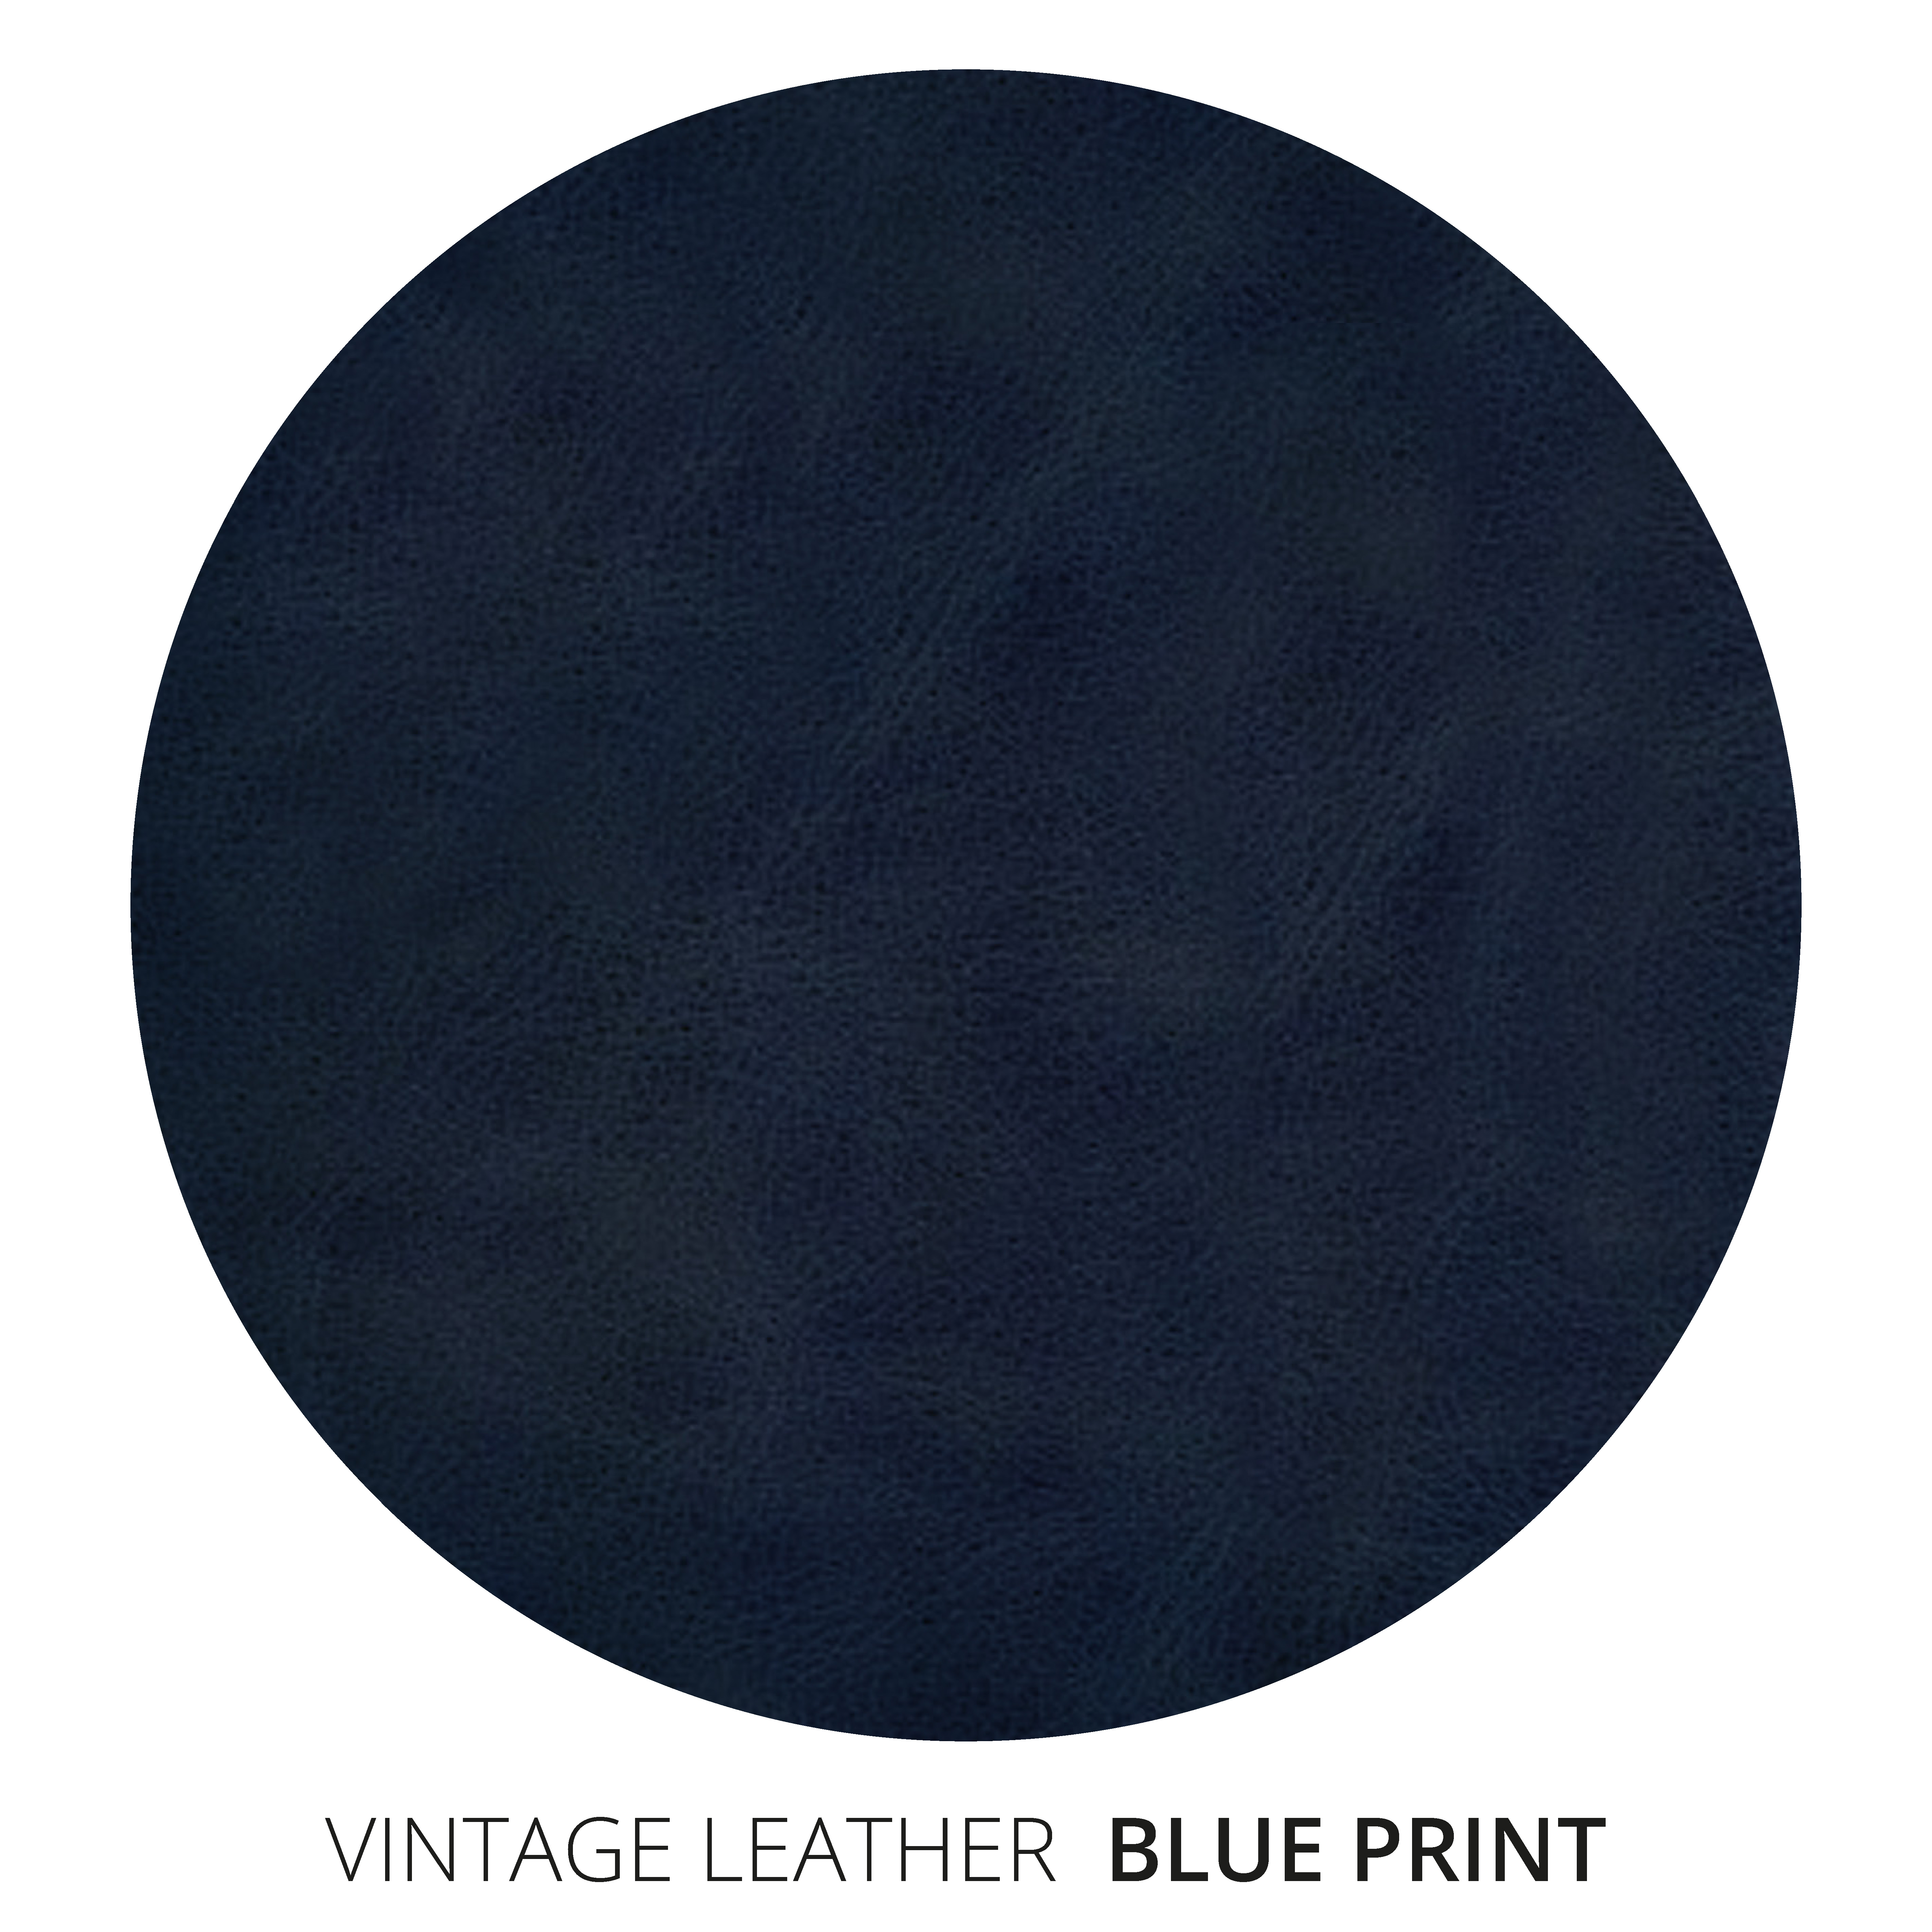 Blue Print Vintage Leather Swatch